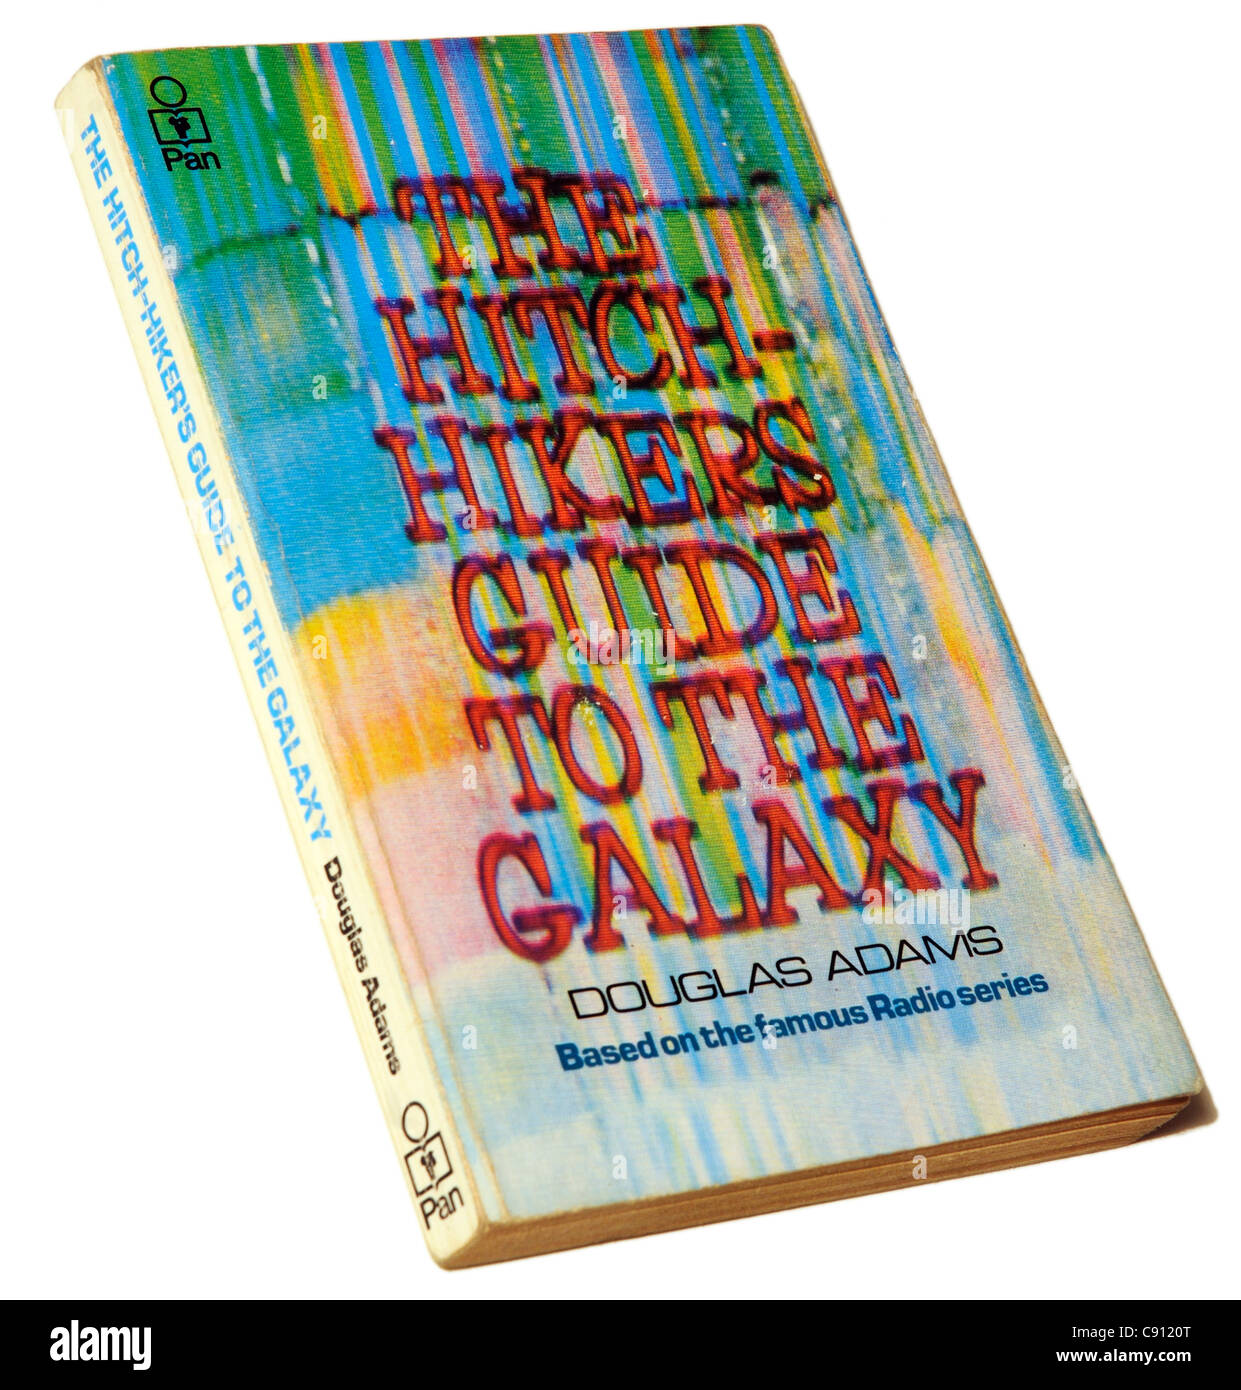 The Hitch Hikers Guide to the Galaxy by Douglas Adams - Stock Image